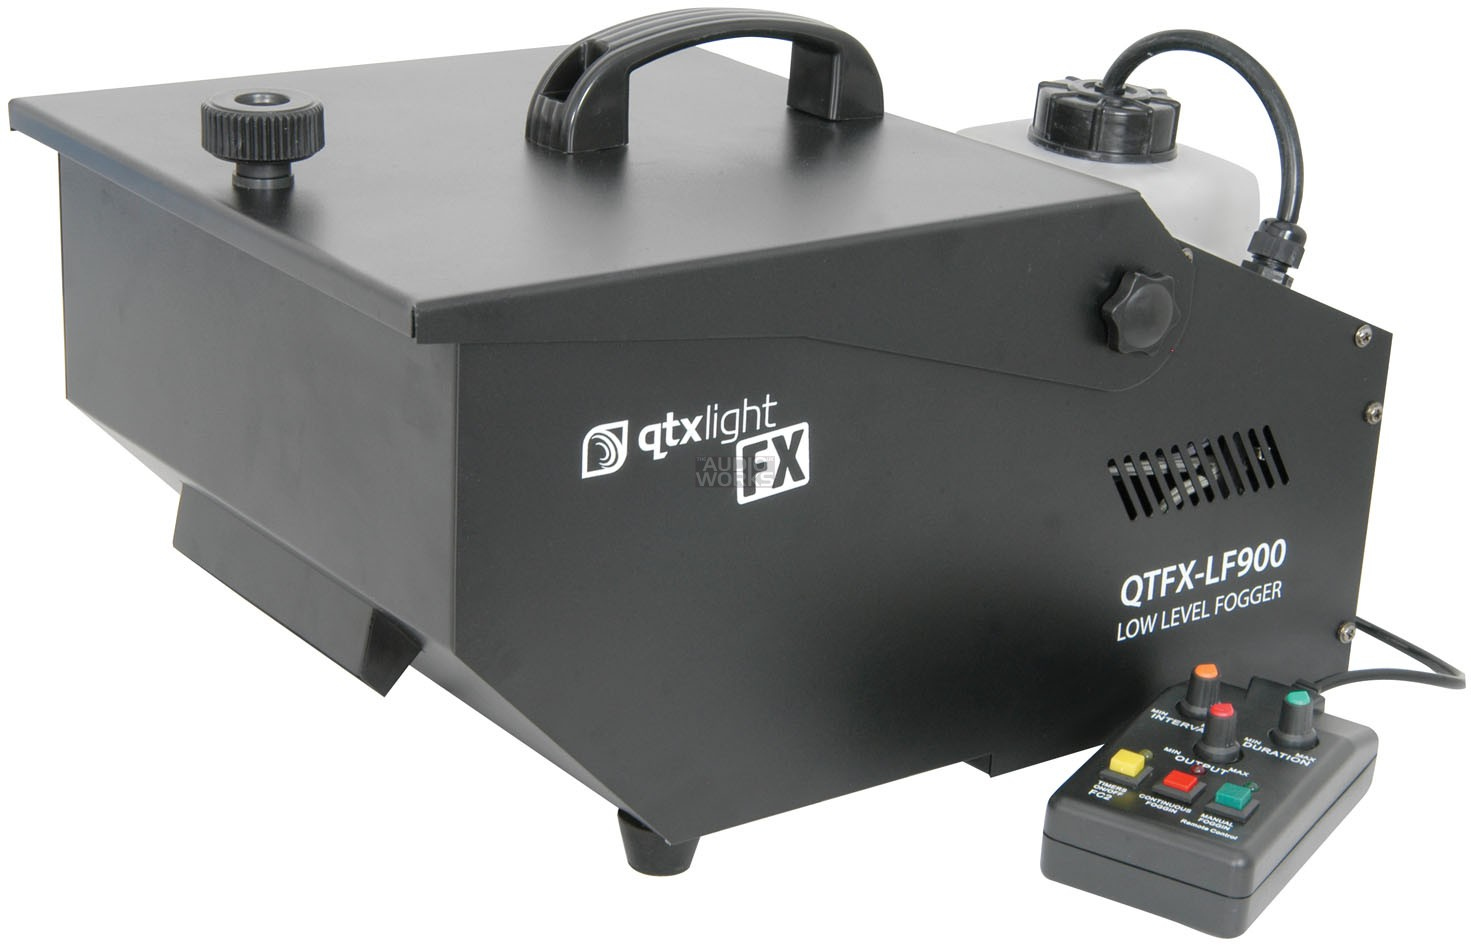 QTFX LF900 900W PROFESSIONAL LOW LEVEL FOGGER